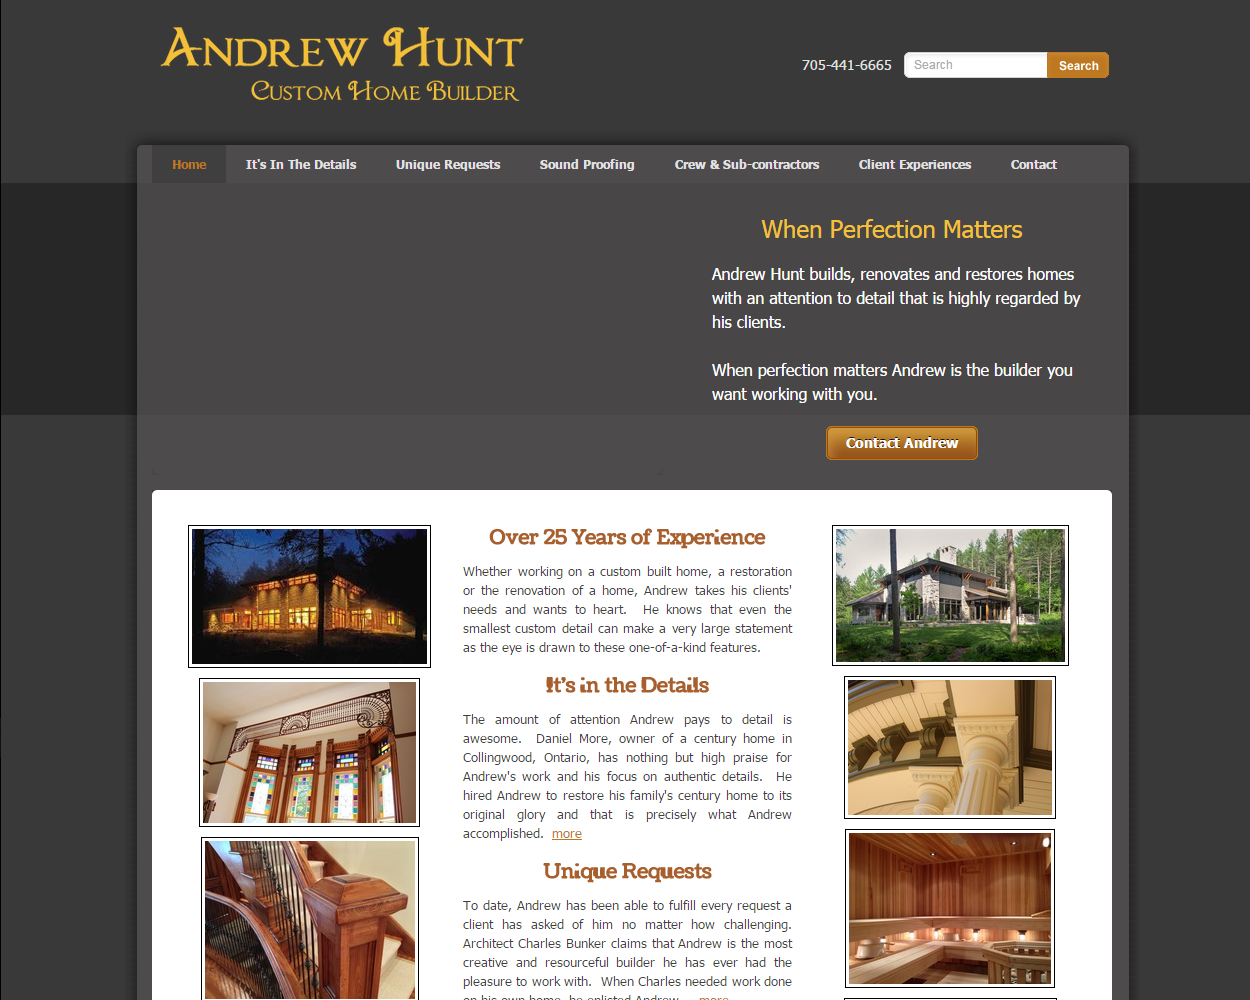 Andrew Hunt Custom Home Builder